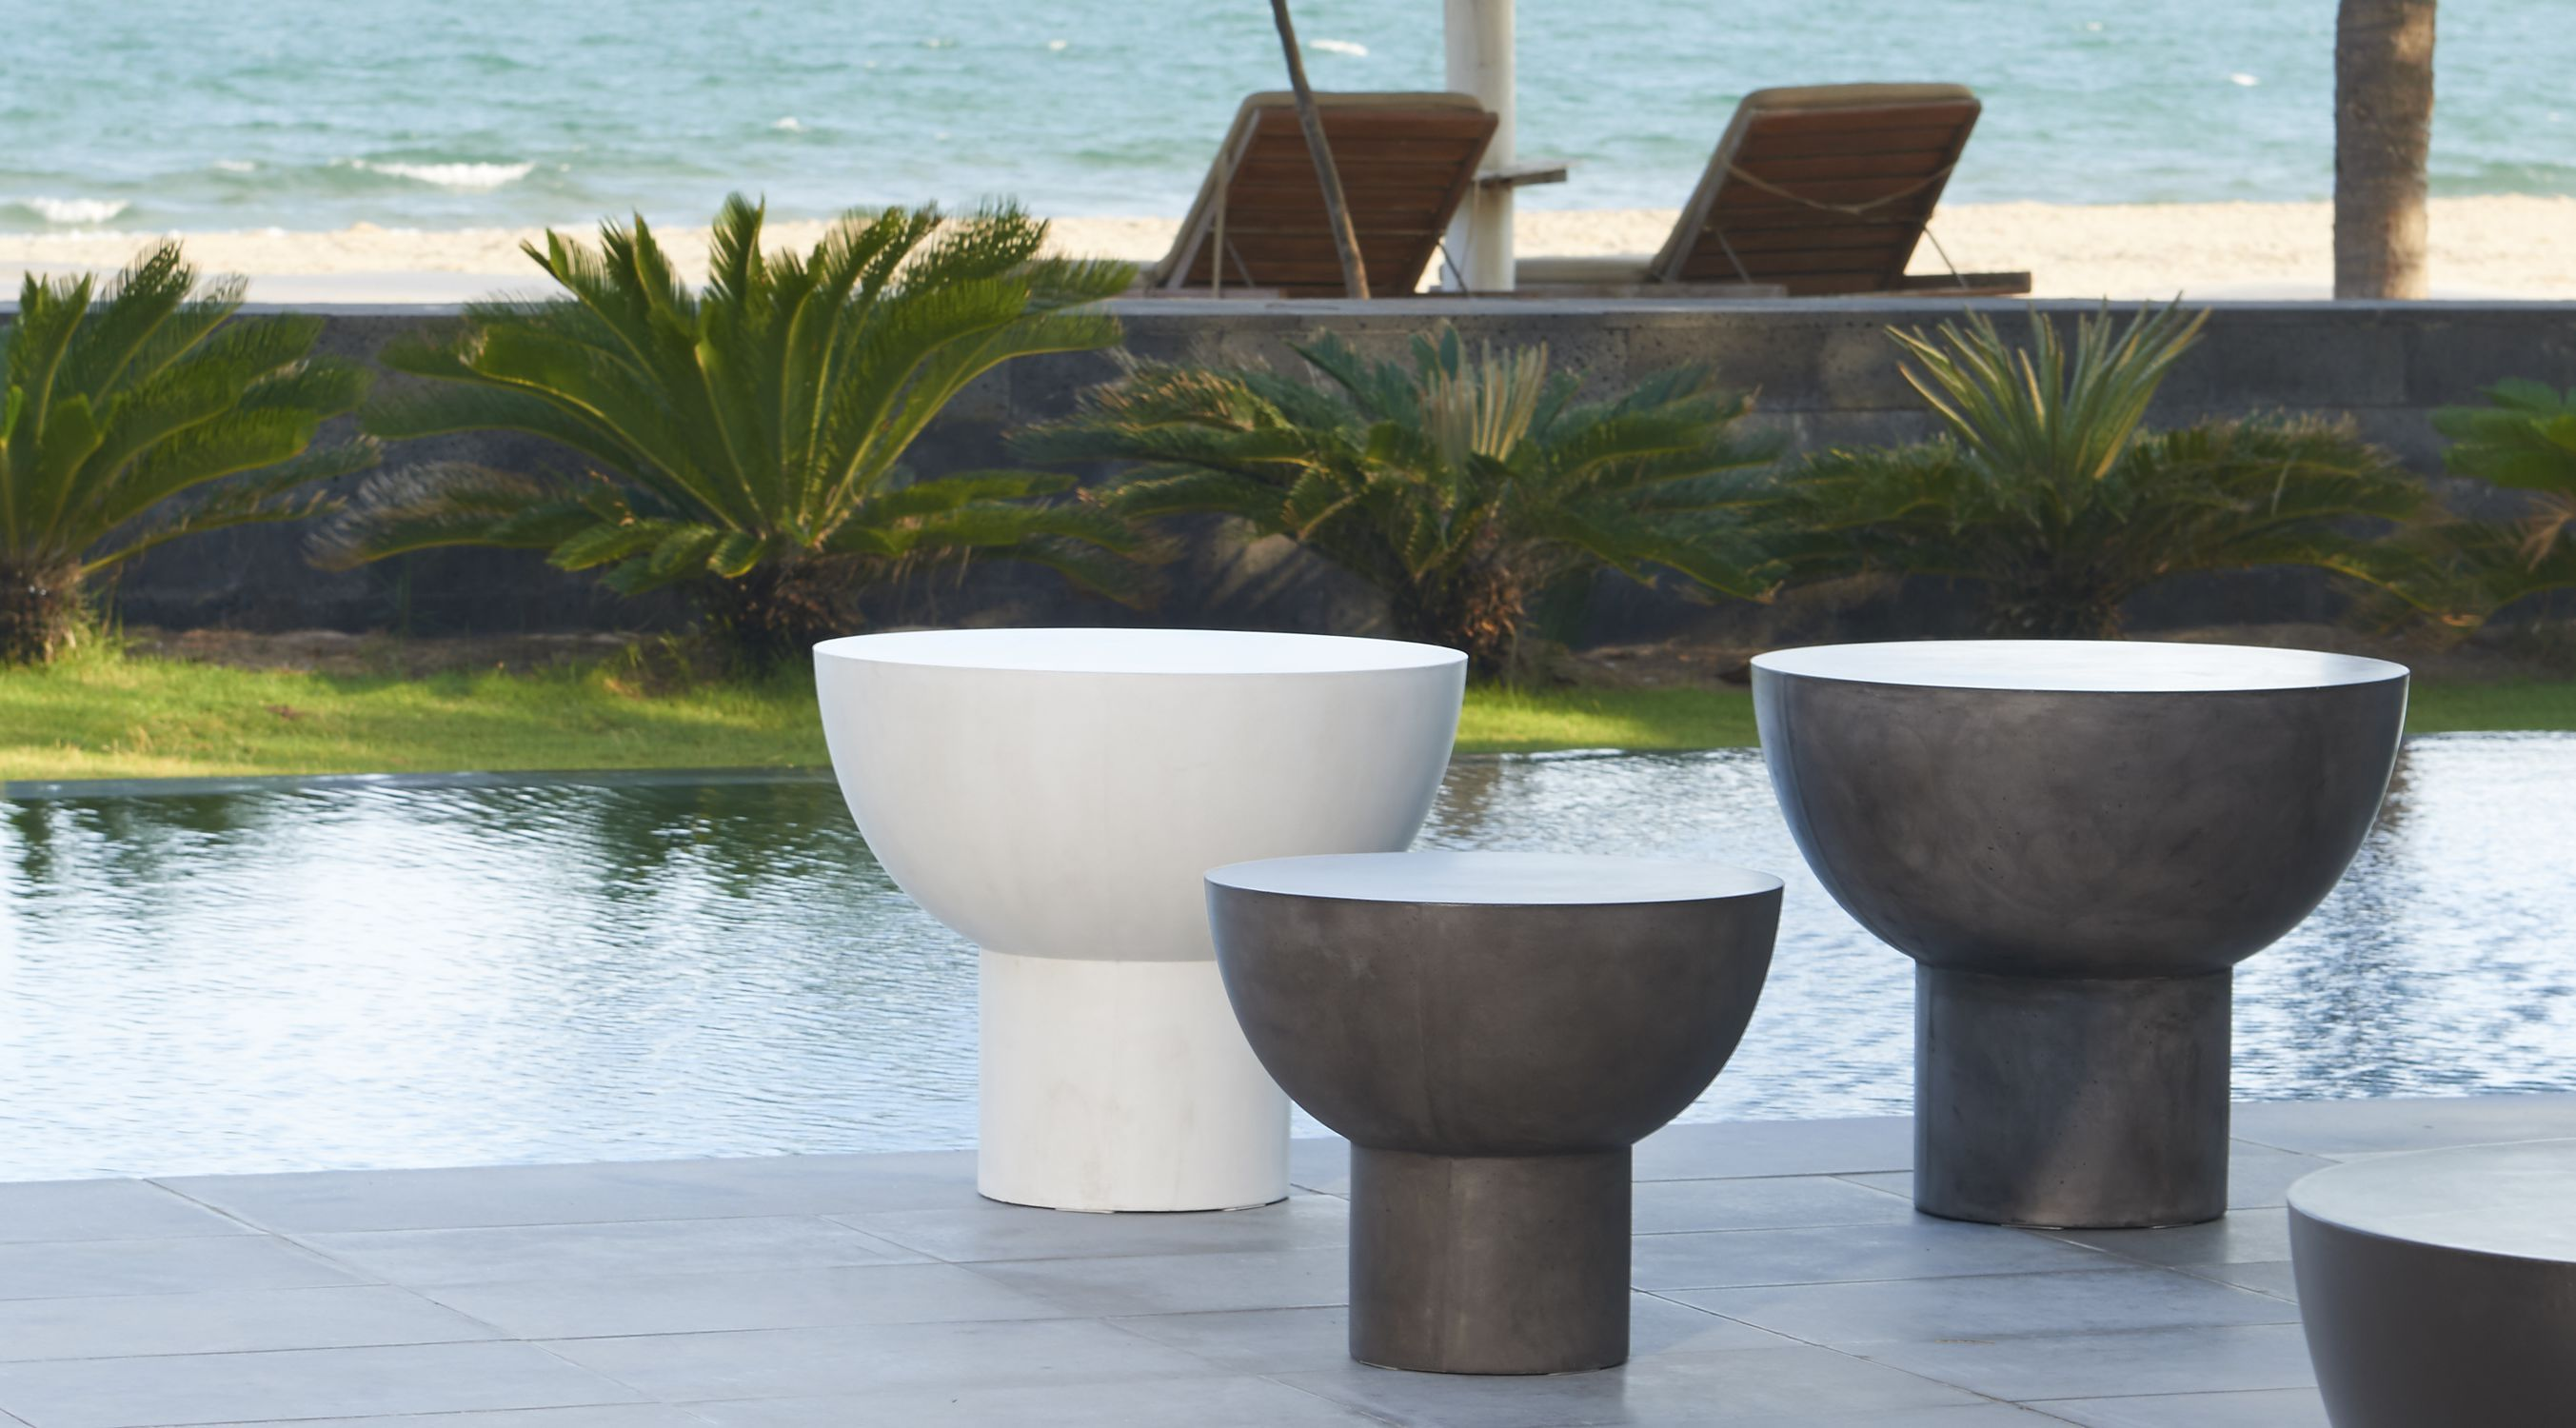 contemporary side table  concrete  round  outdoor bob saveri singaporepteltd. contemporary side table  concrete  round  outdoor  bob